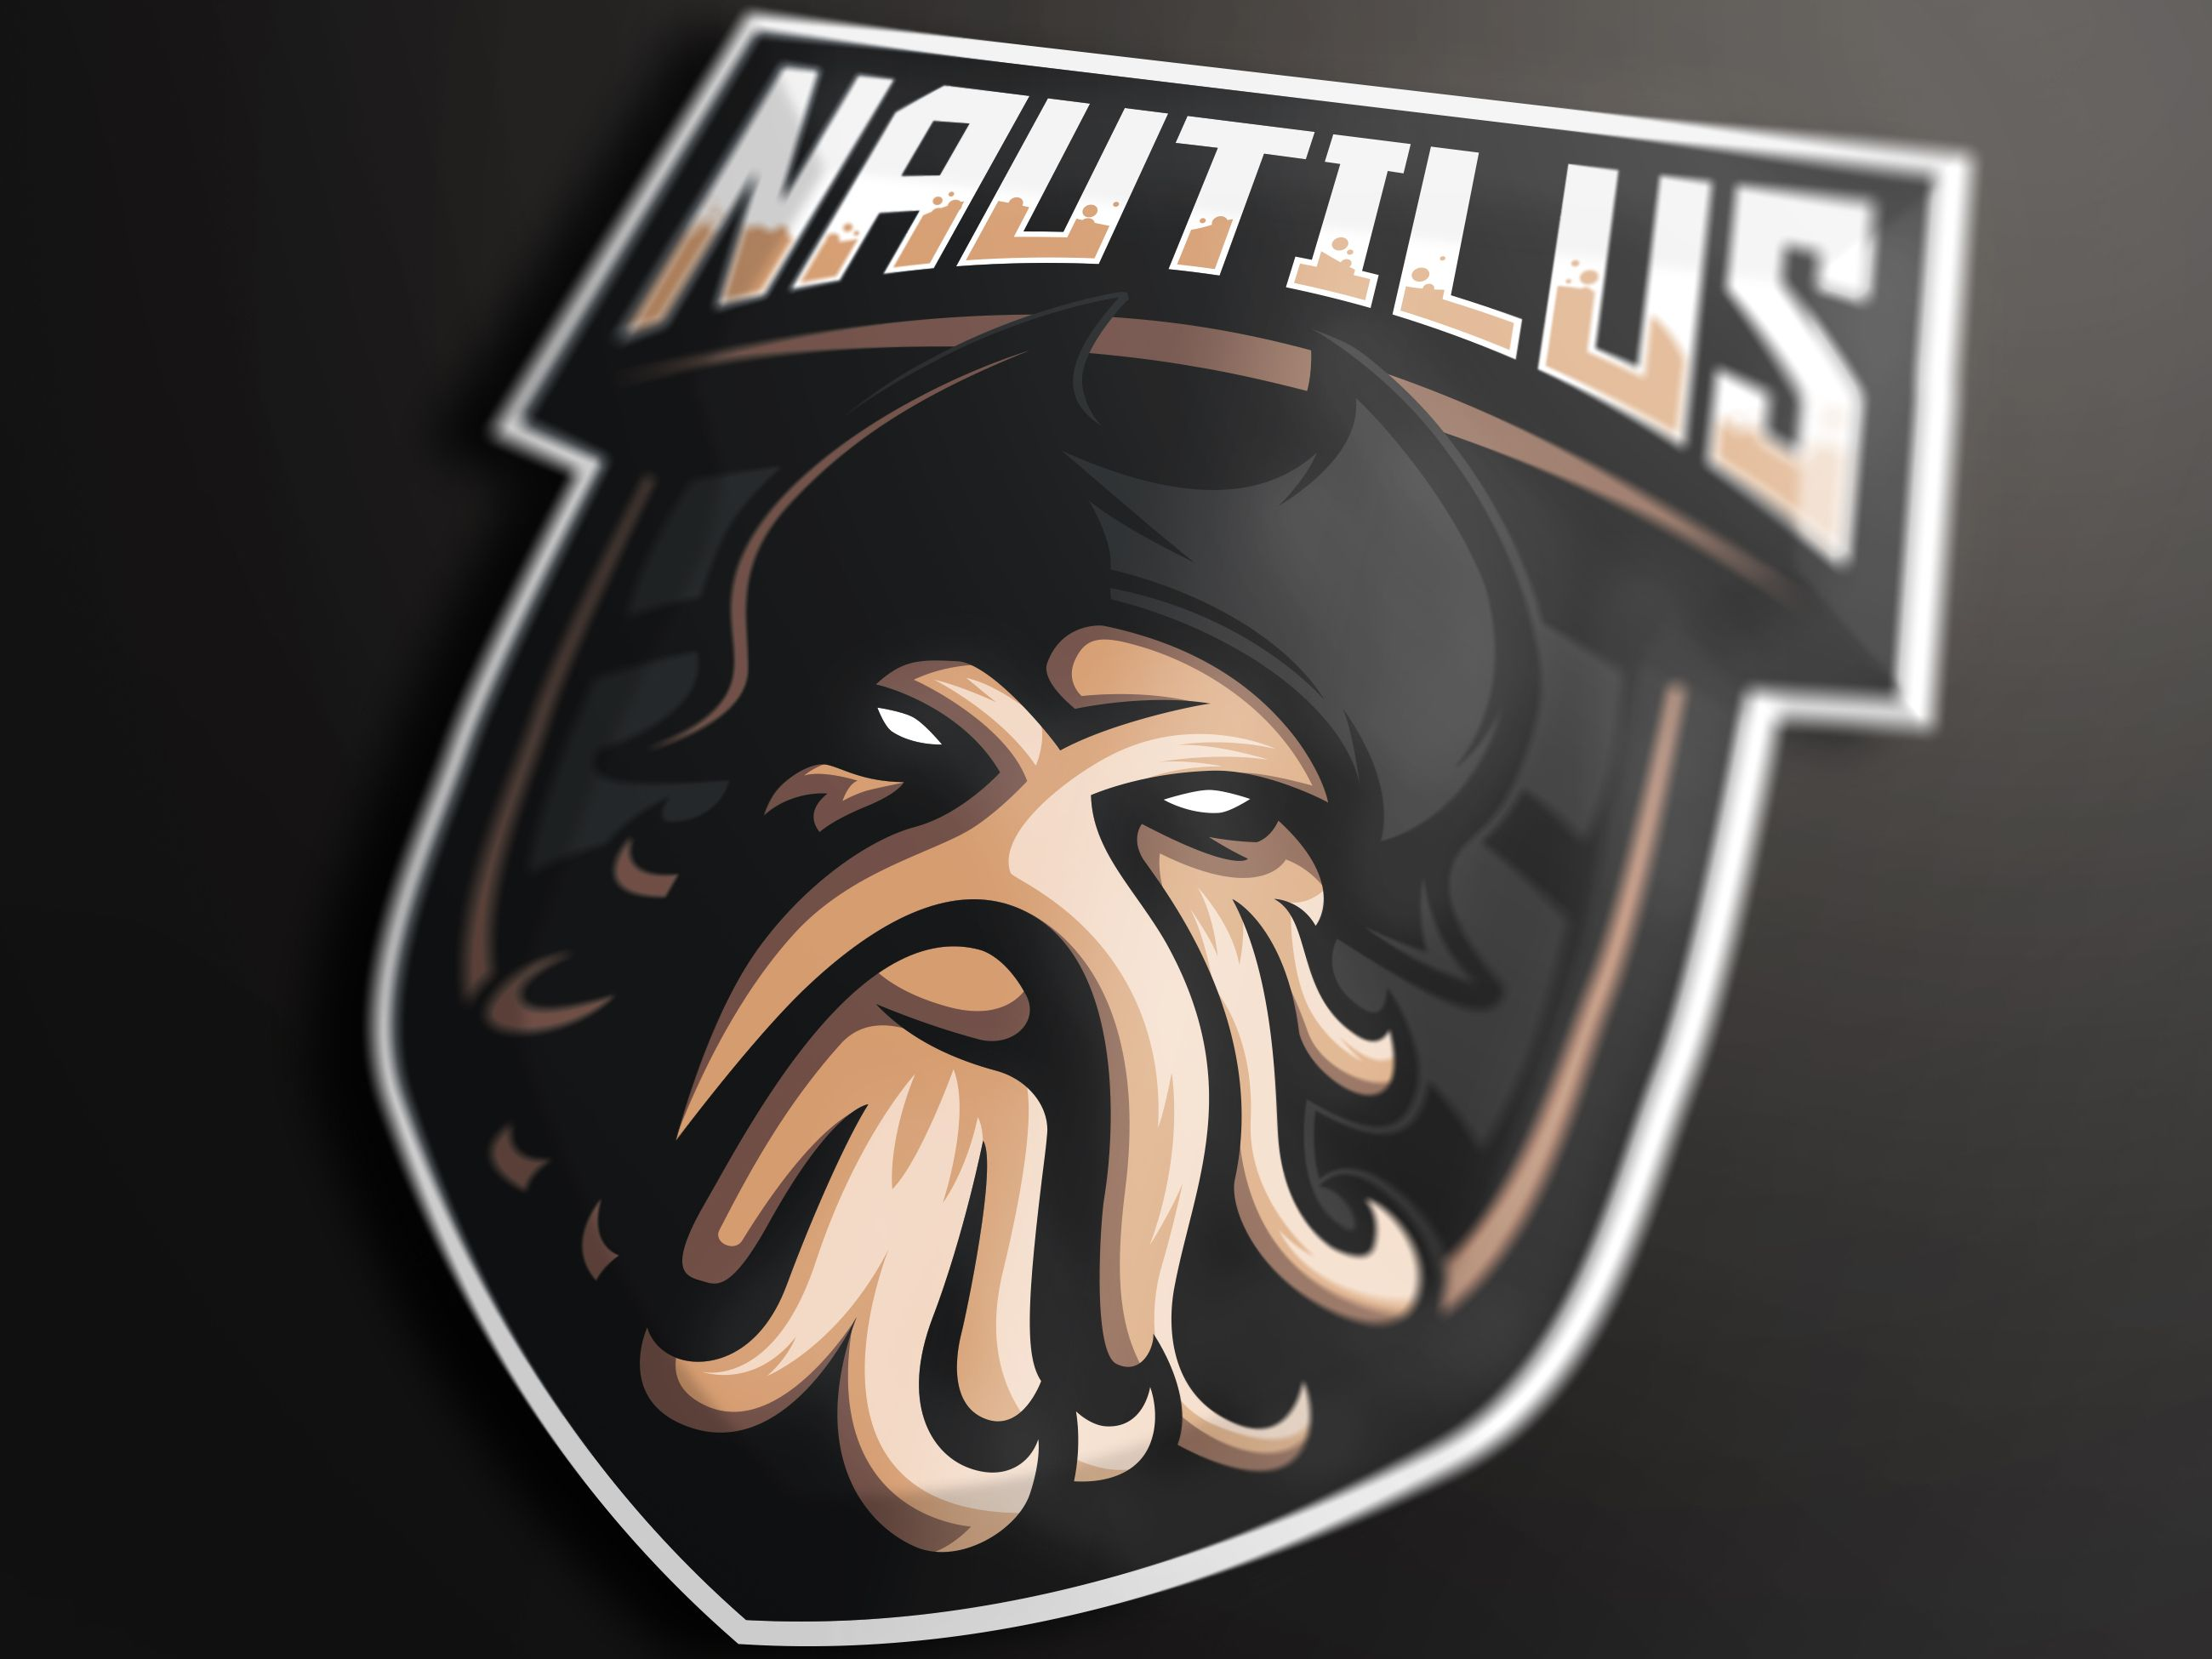 Nautilus Mascot Logo Fantasy Football Logos Sports Logo Design Football Logo Design